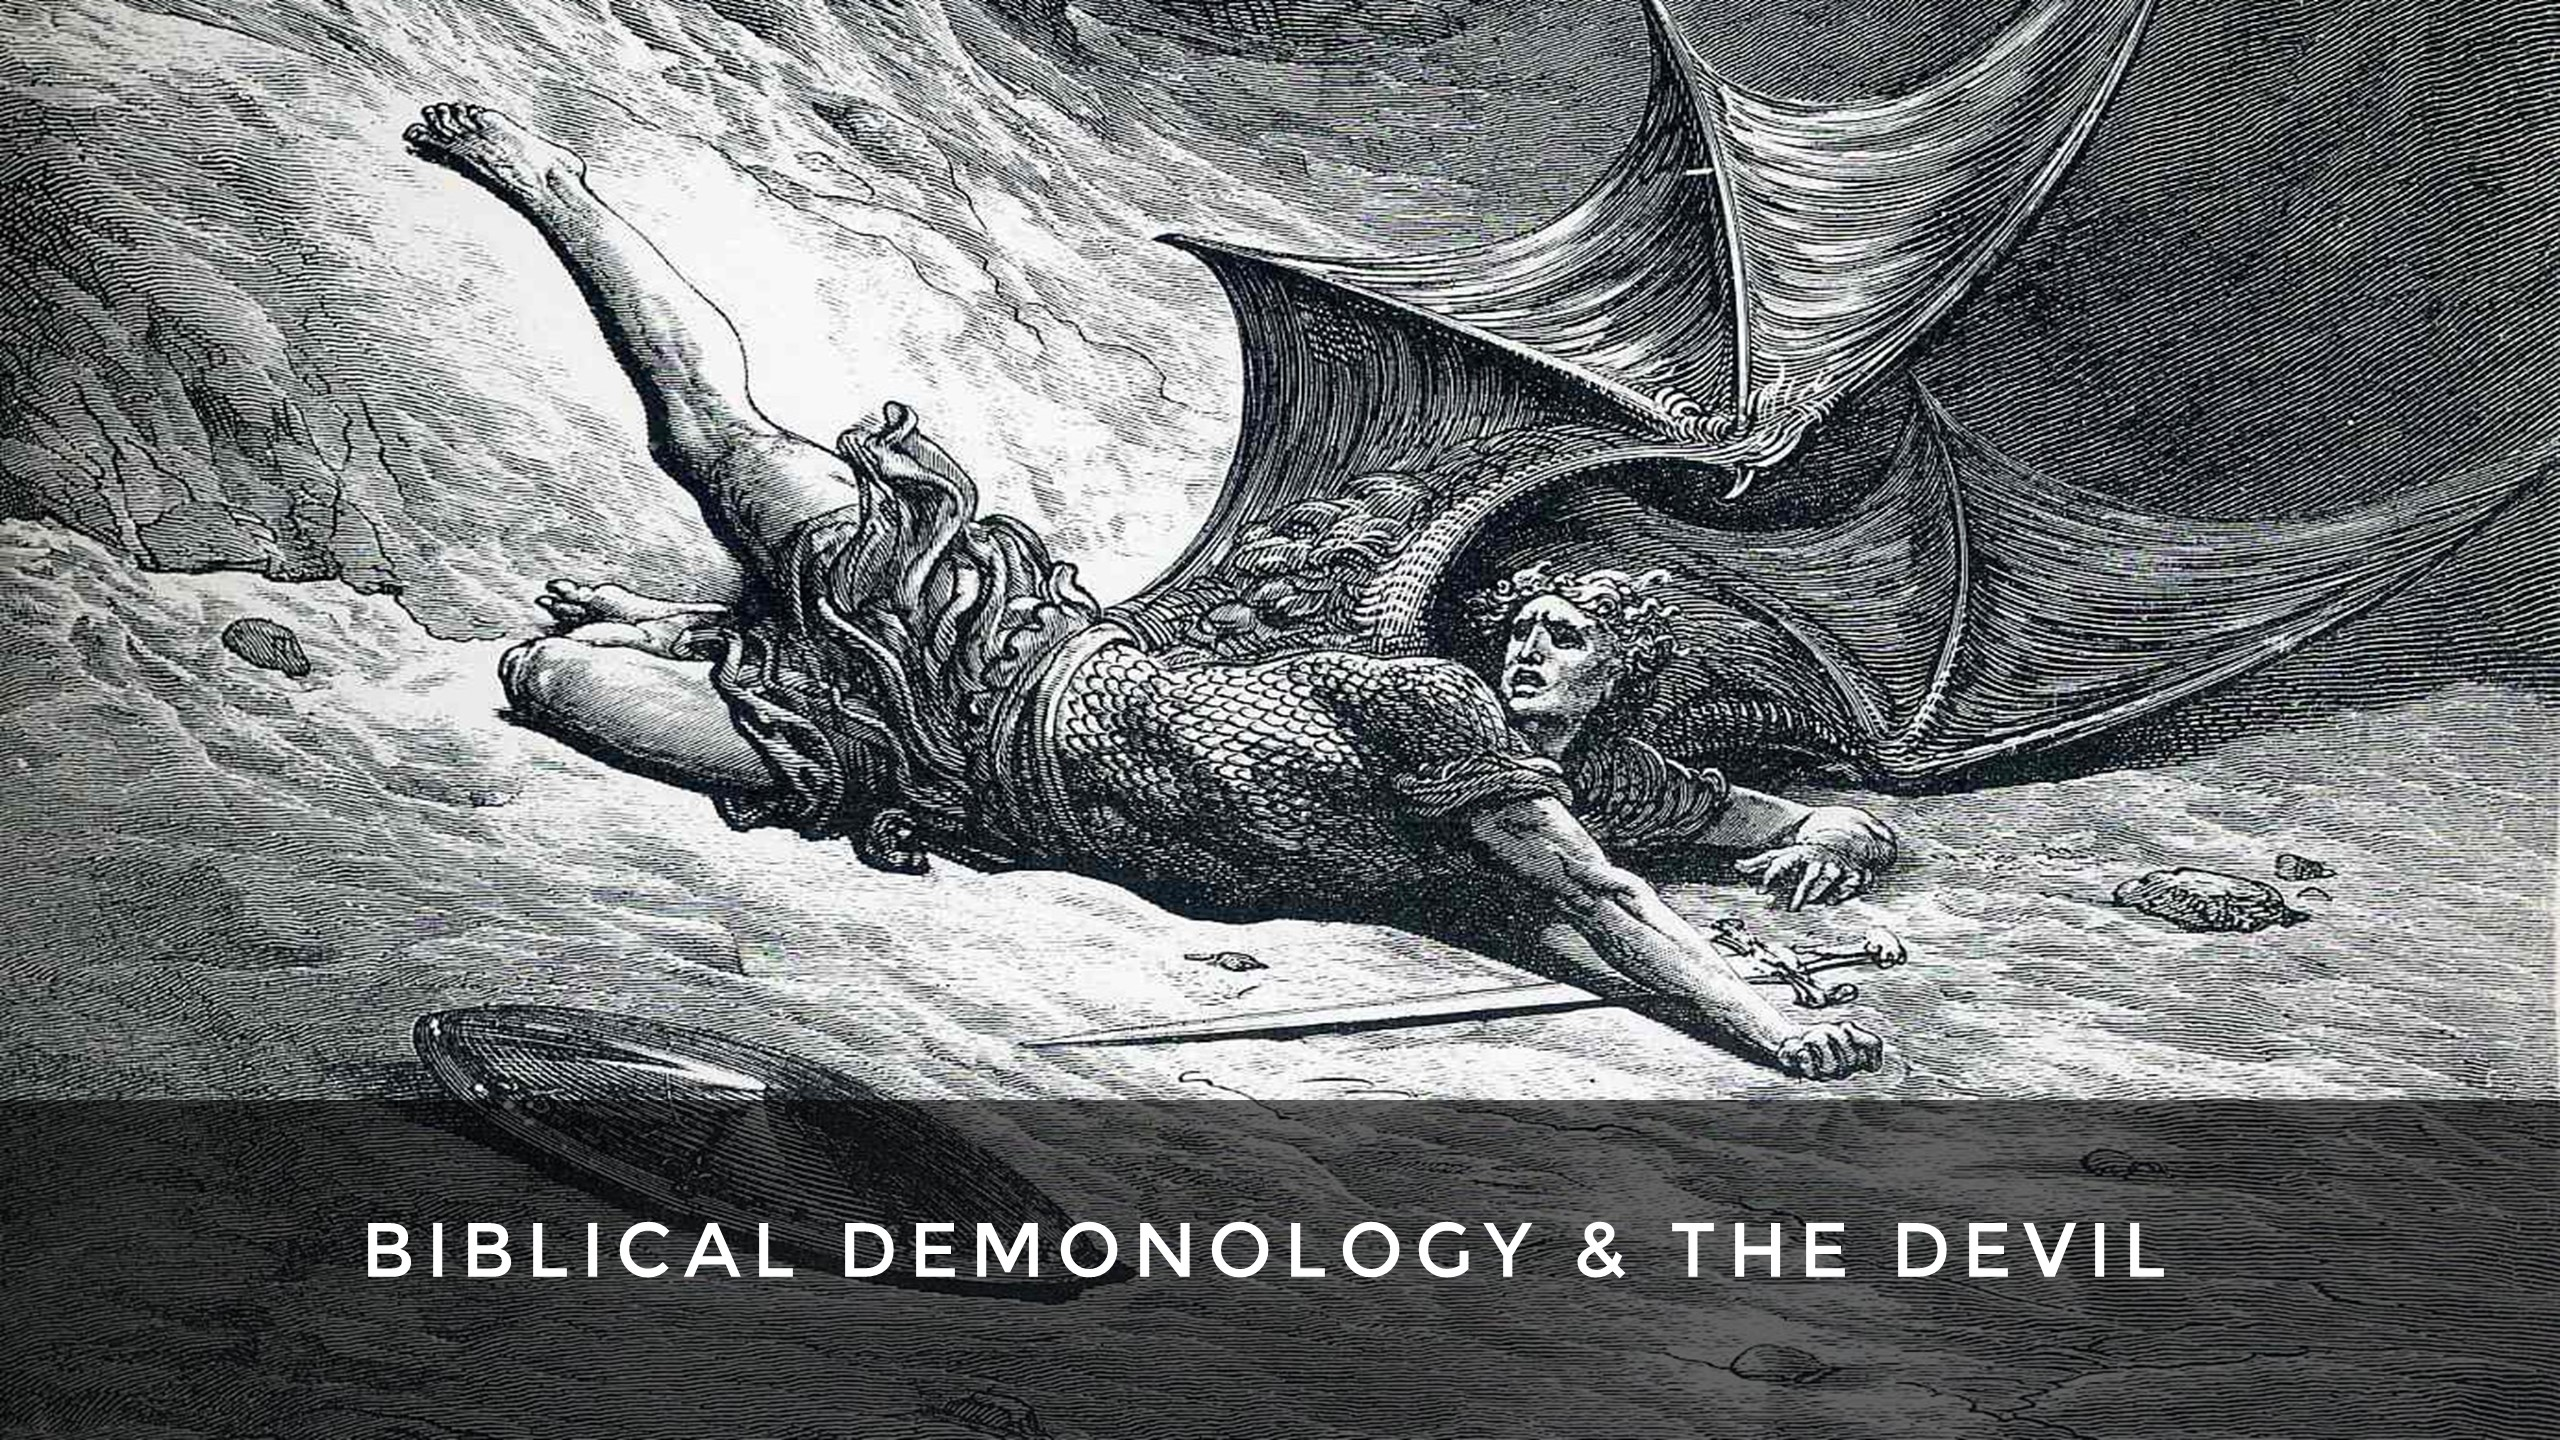 how to get a degree in demonology